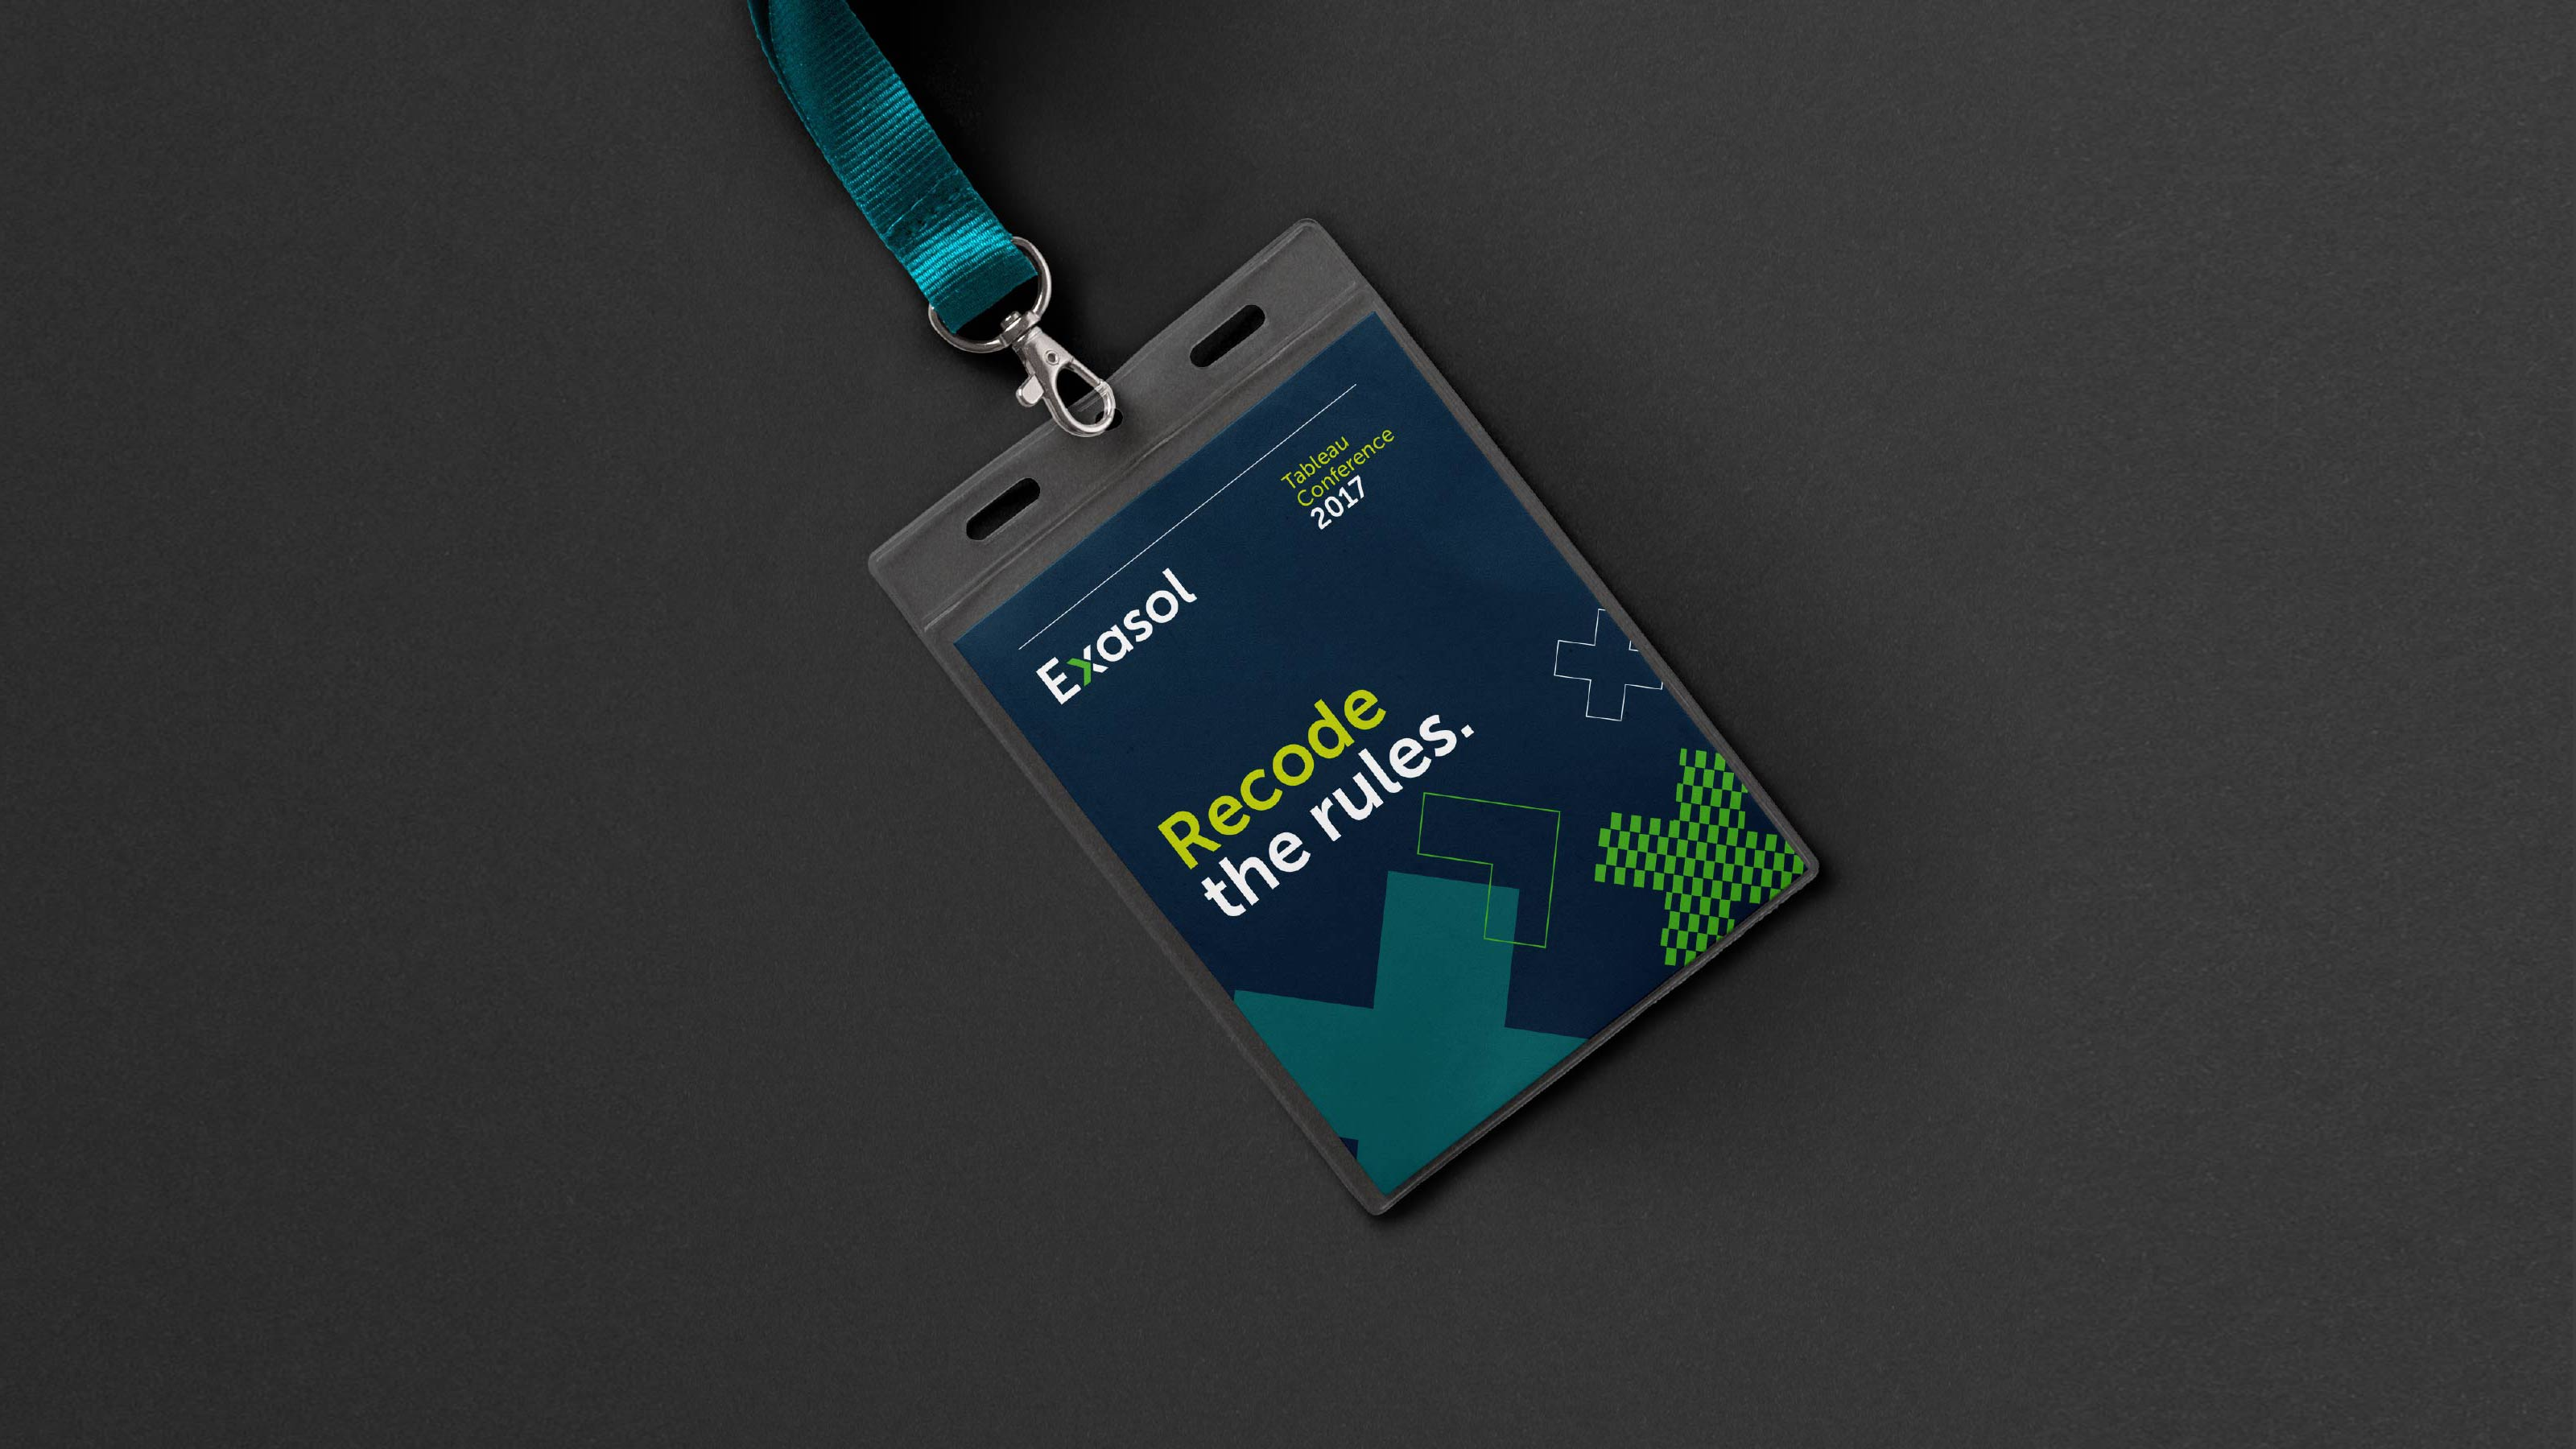 Exasol Marketing name tag